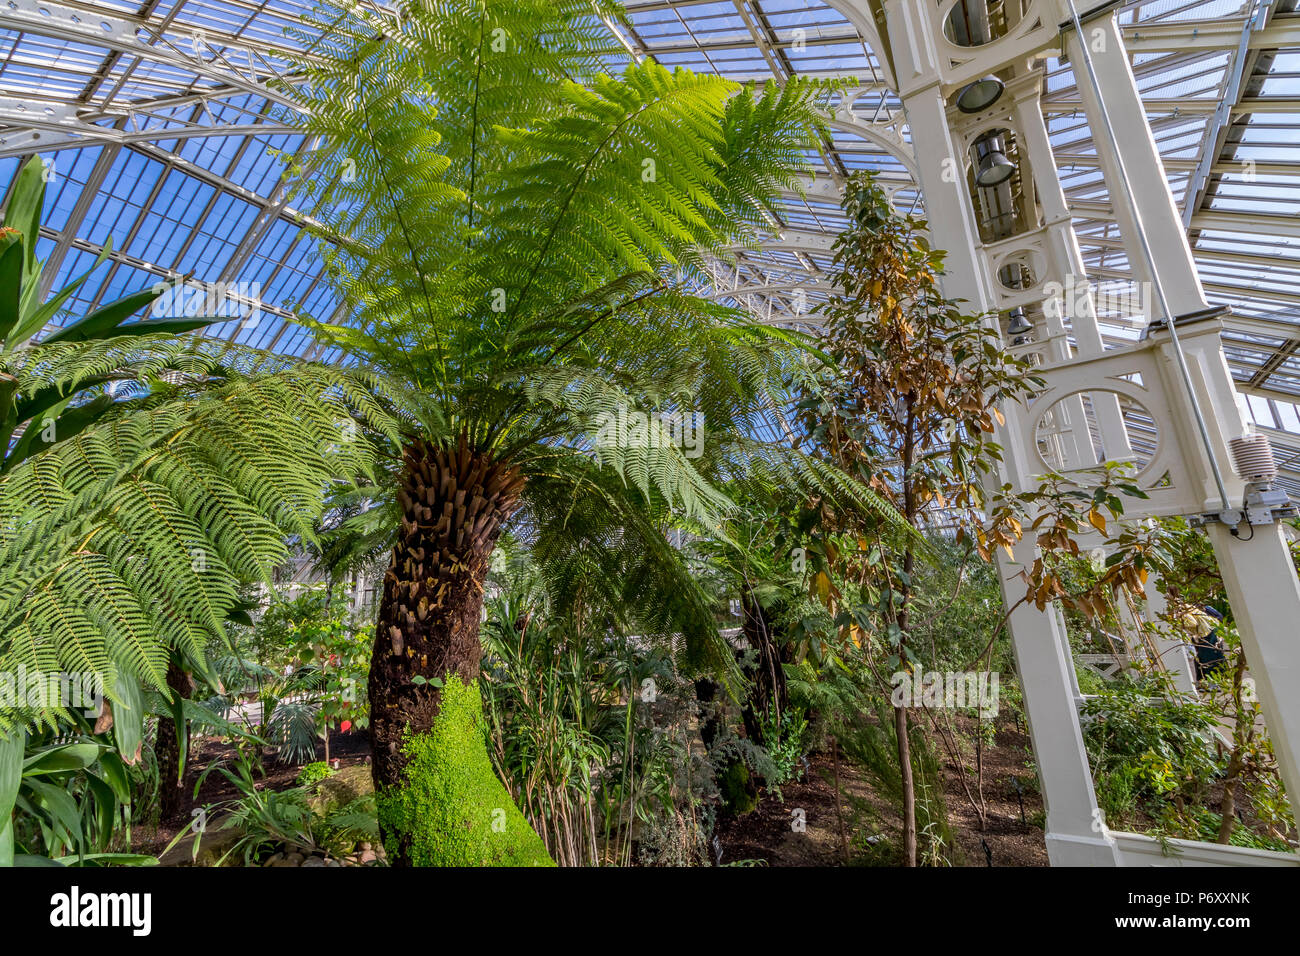 Dicksonia antarctica at the newly restored Temperate House at The Royal Botanic Gardens, Kew in London has re-opened to visitors . - Stock Image